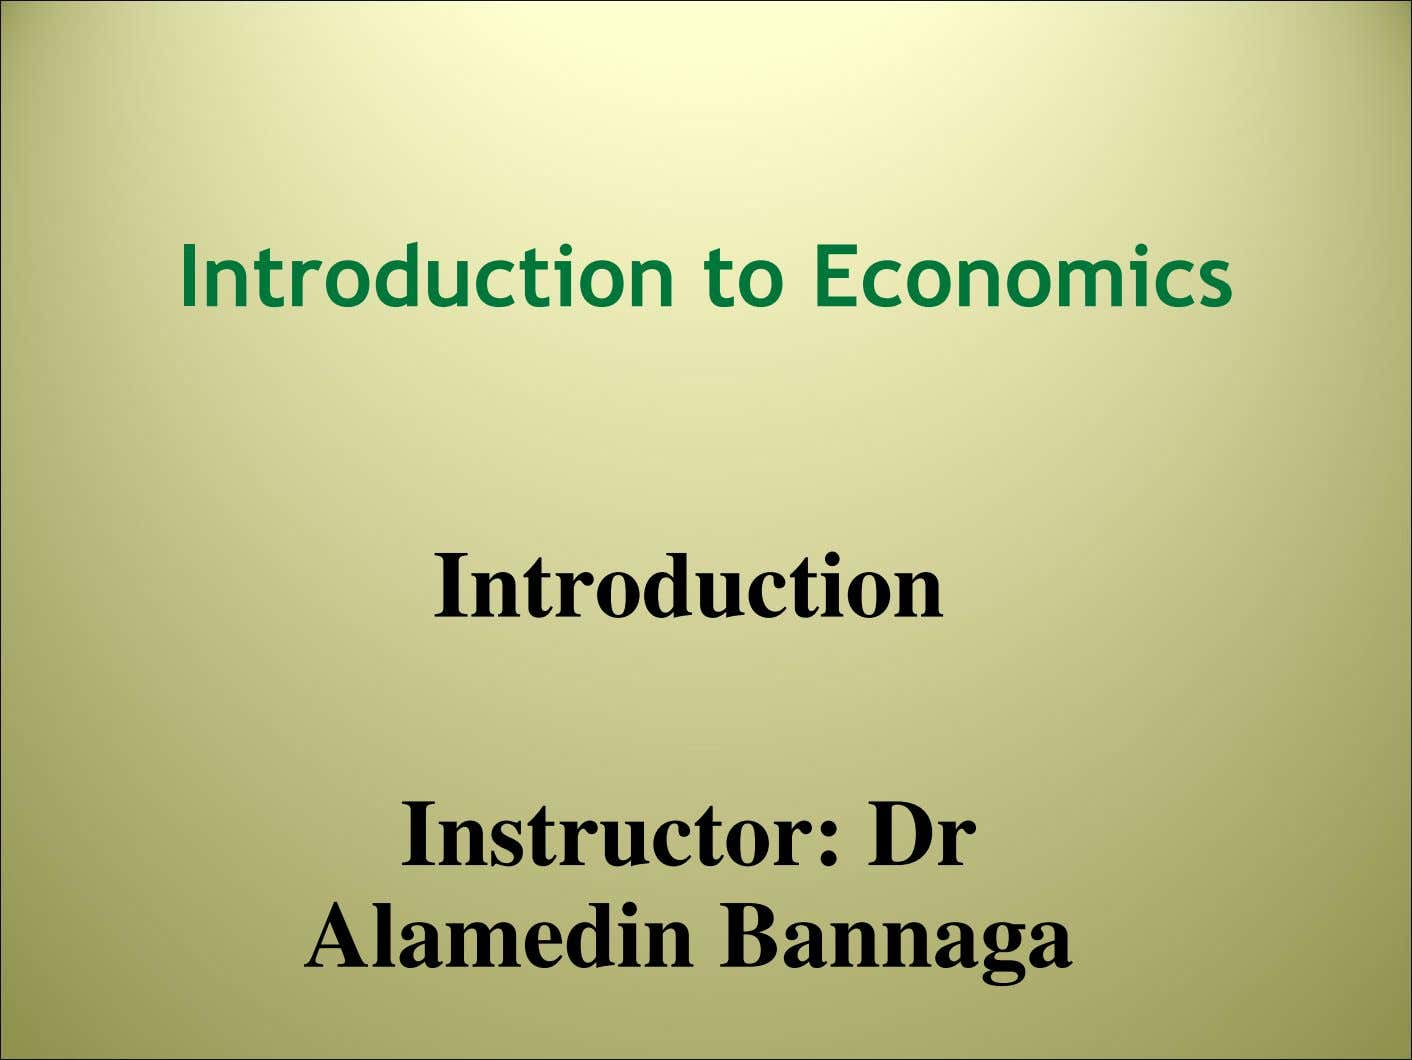 Introduction to Economics Introduction Instructor: Dr Alamedin Bannaga